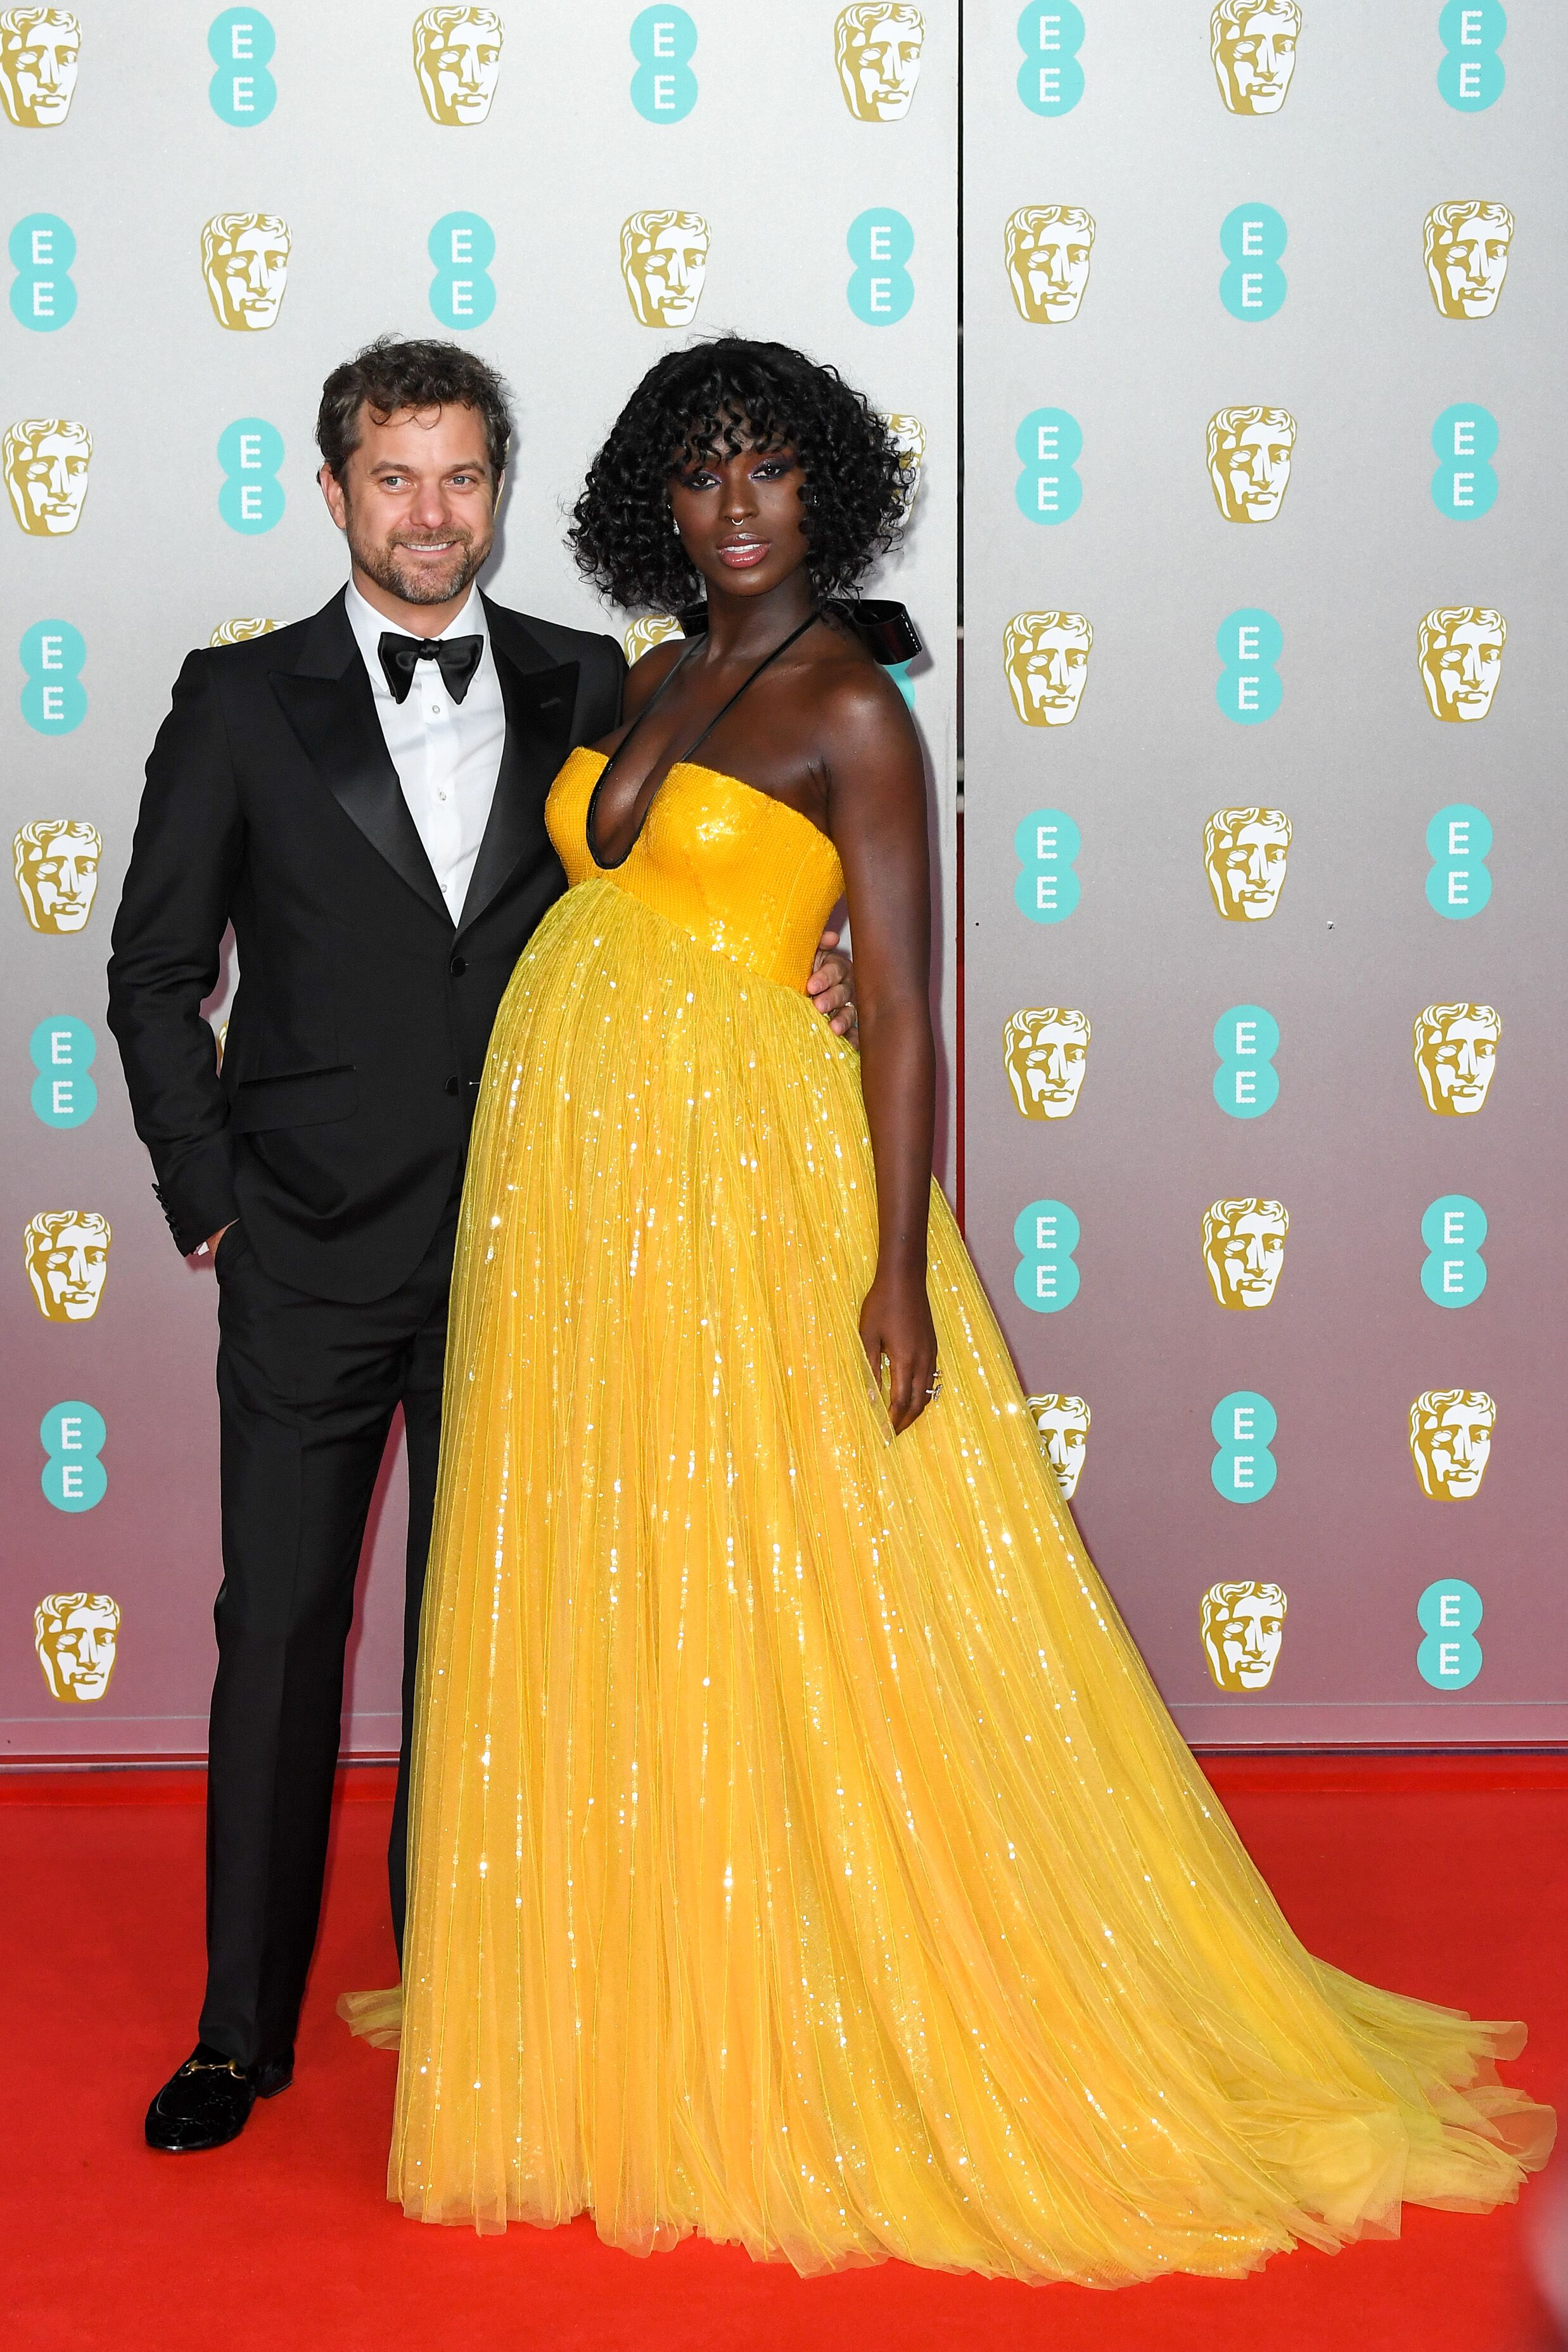 Jodie Turner-Smith and Joshua Jackson at the BAFTAs in London | Source: Getty Images/GlobalImagesUkraine